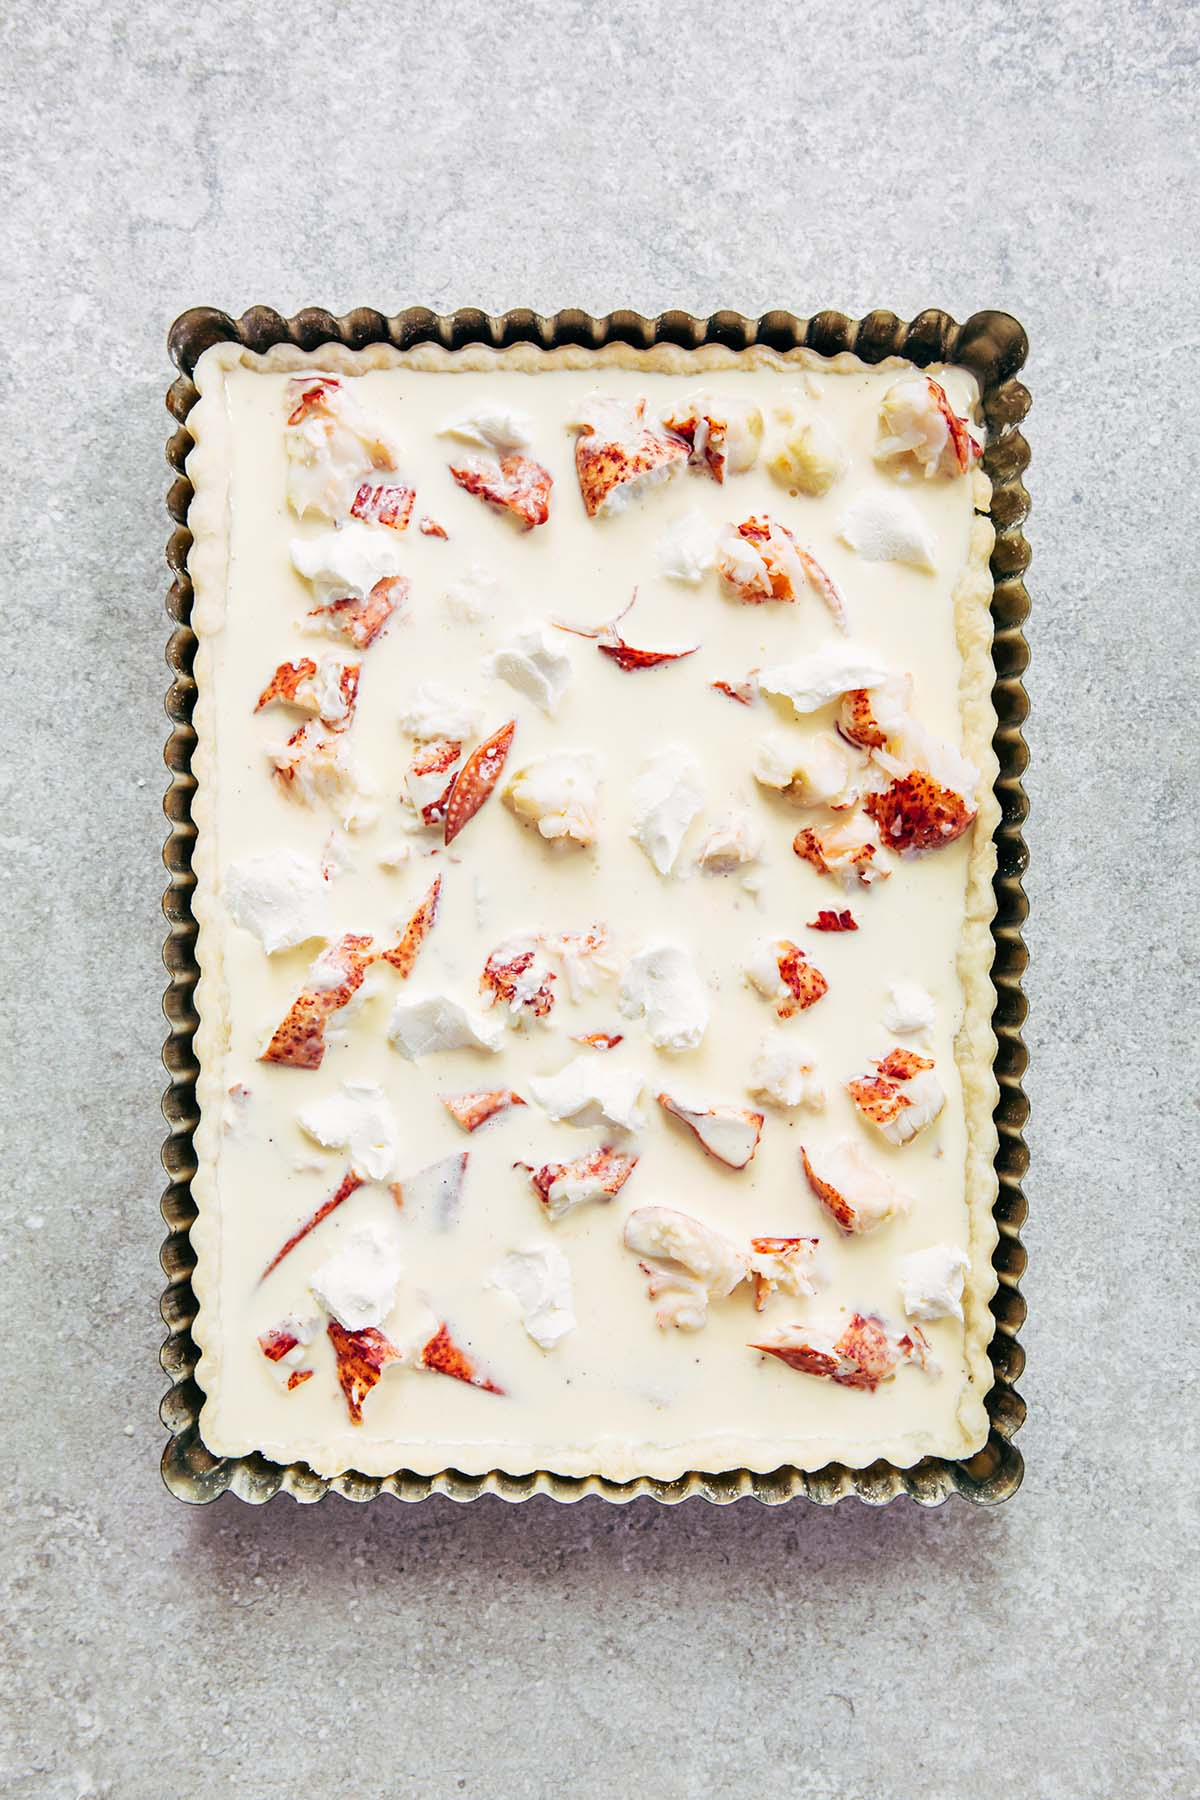 An unbaked rectangular quiche in a metal tart tin with pieces of cooked lobster and cream cheese throughout.